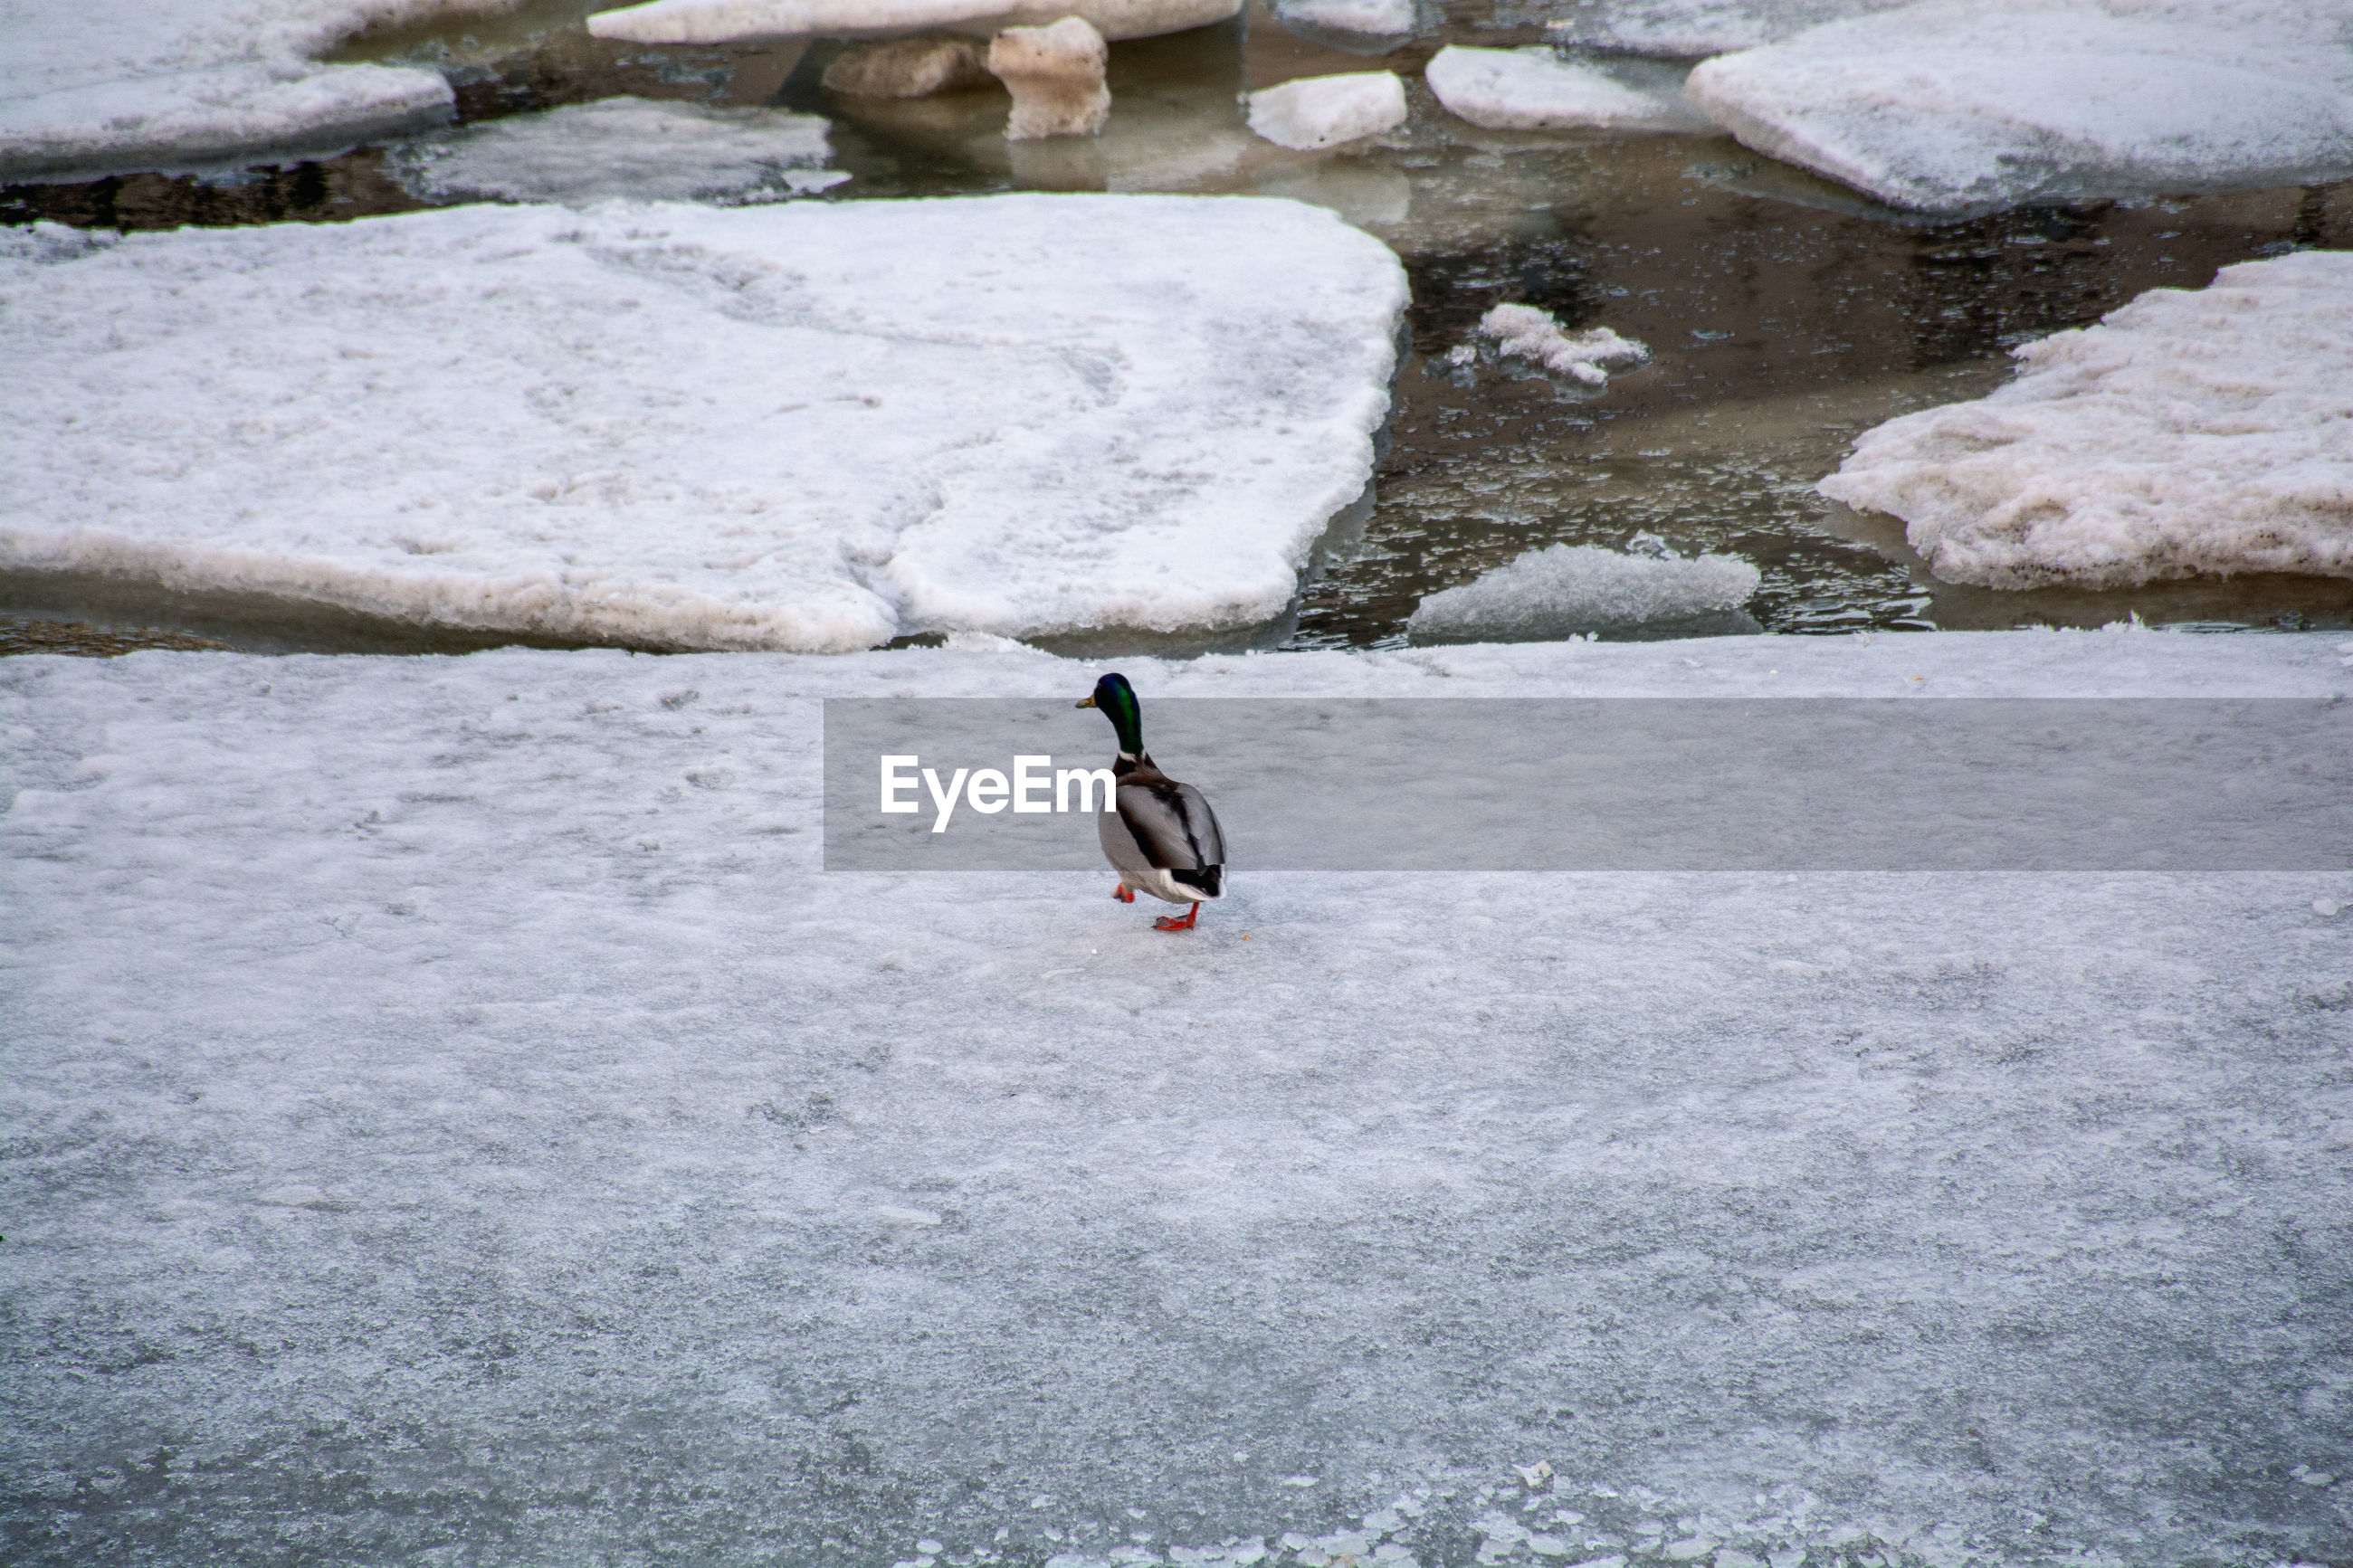 High angle view of bird in lake during winter